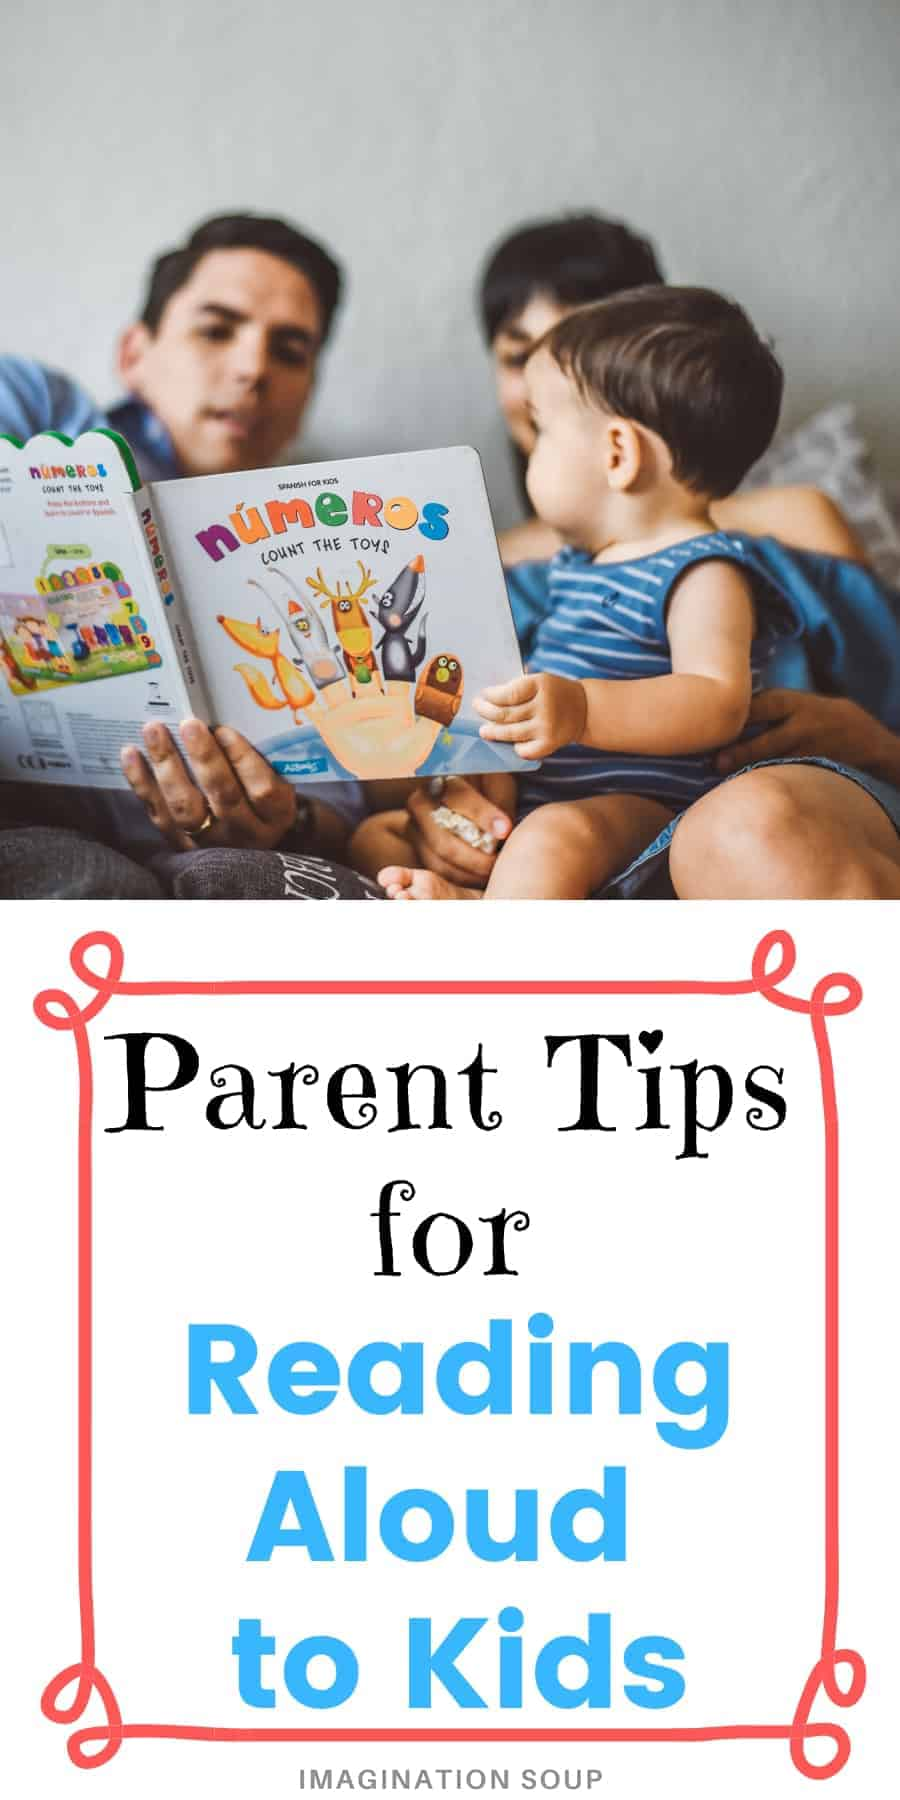 parent tips for reading aloud to kids